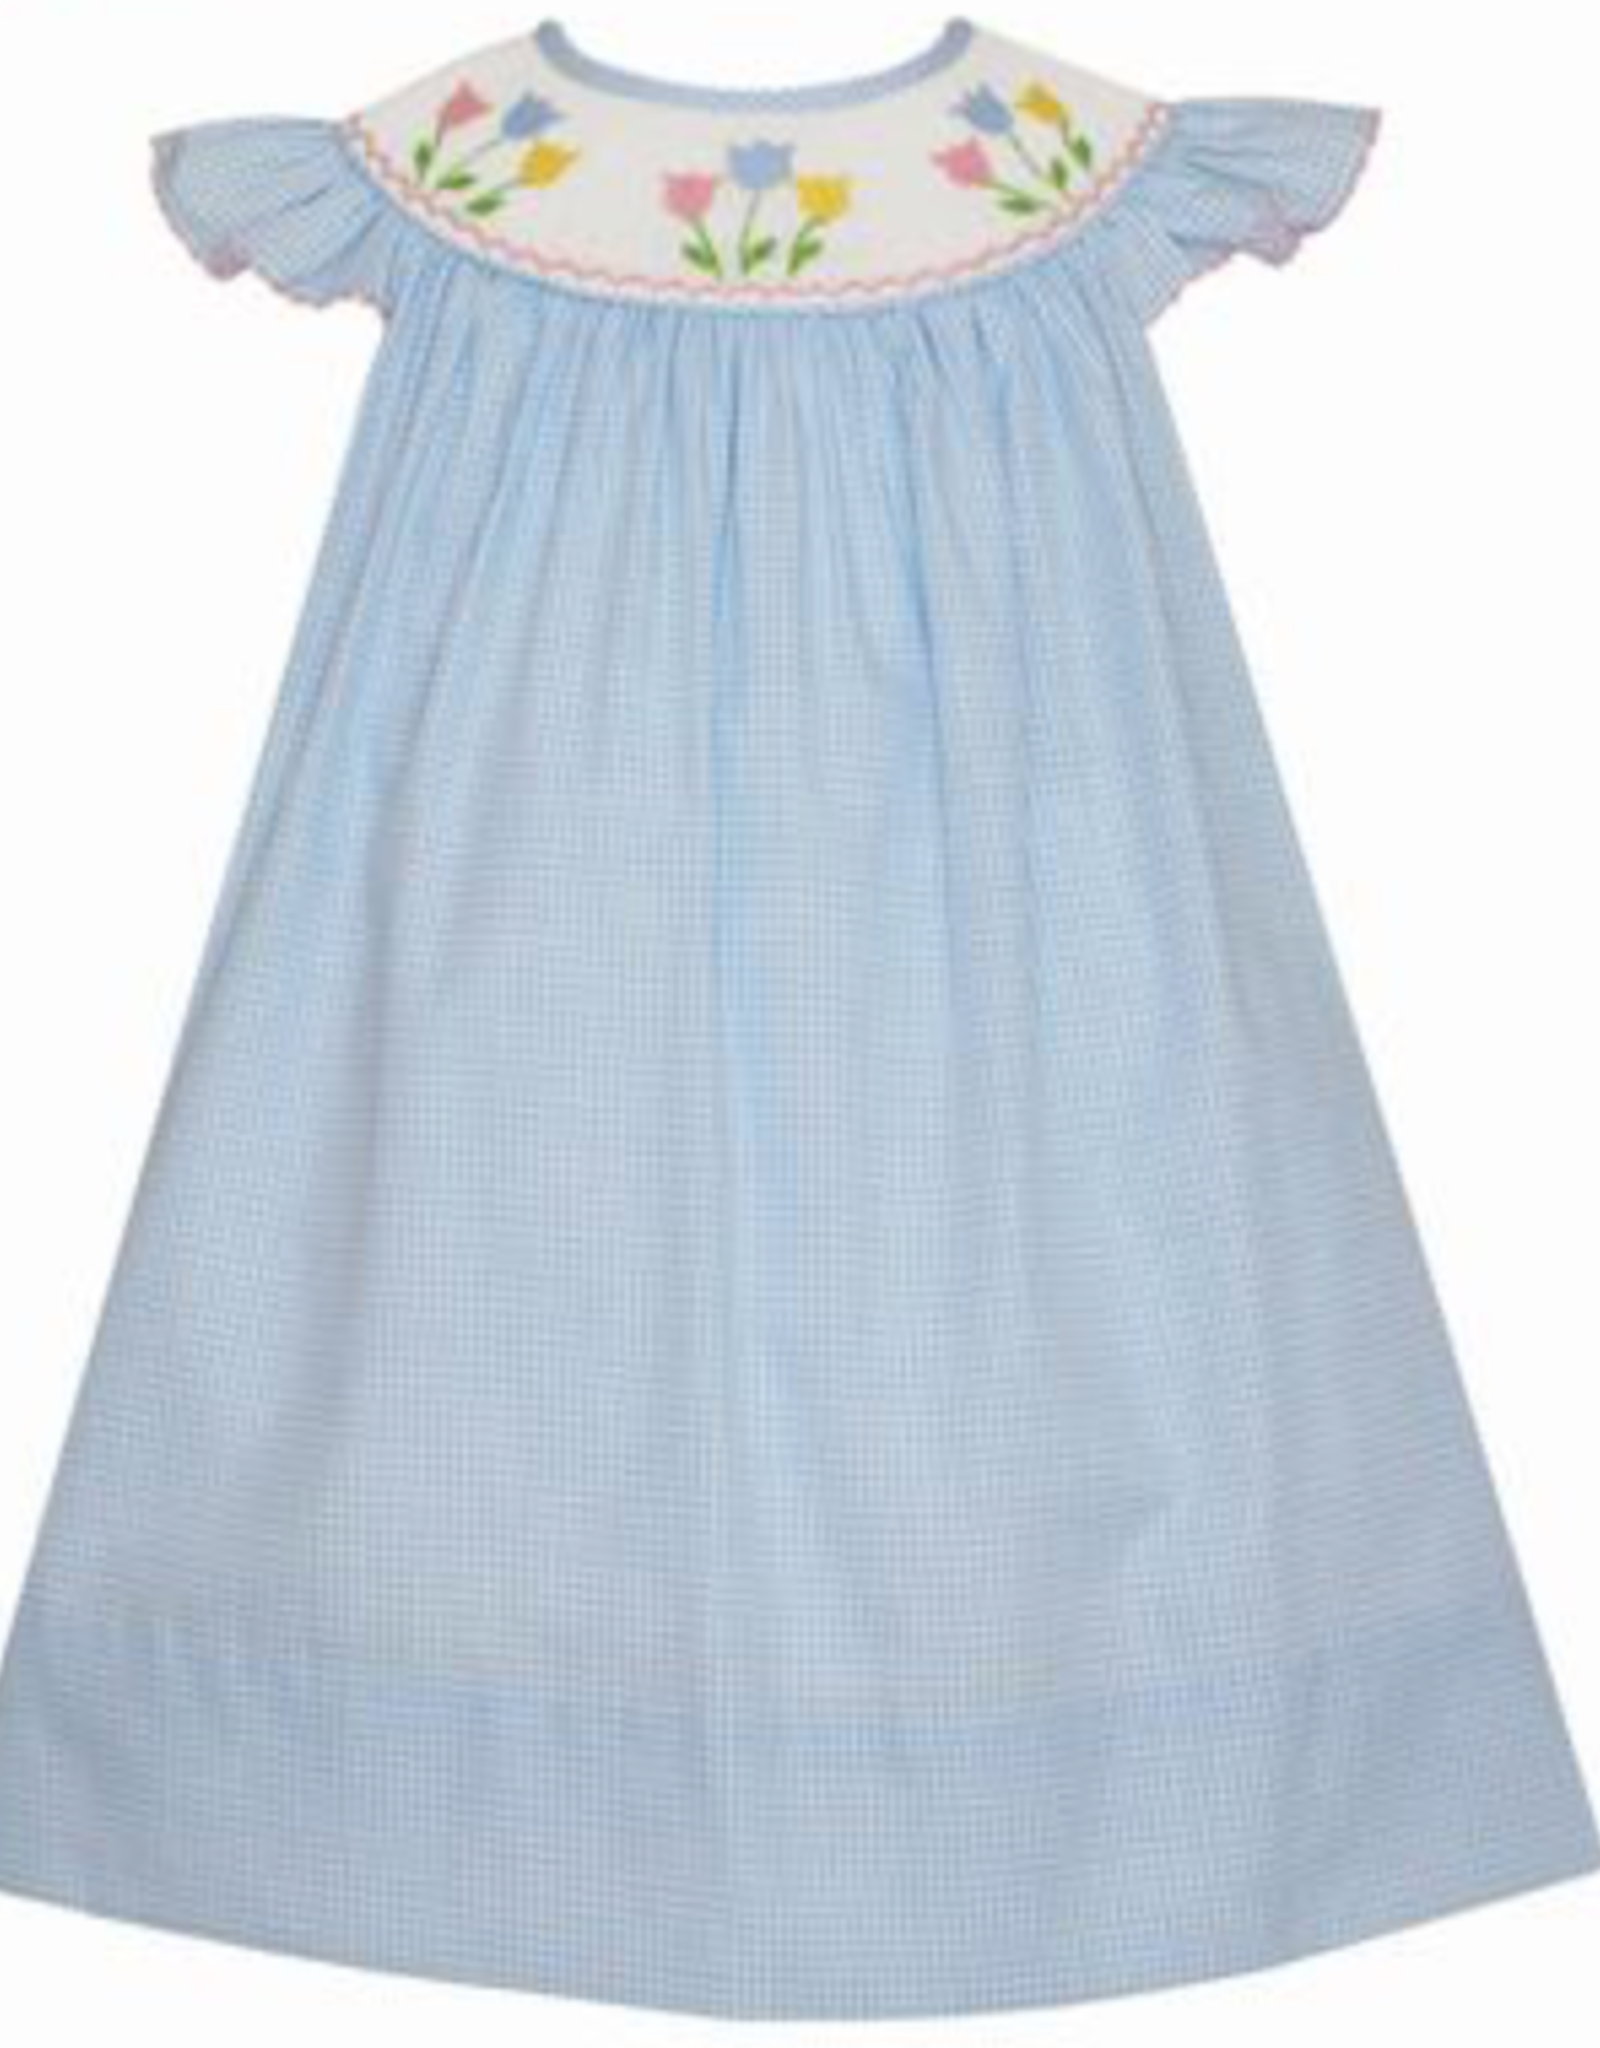 Petit Bebe Blue Gingham Angel Wing Dress With Tulips